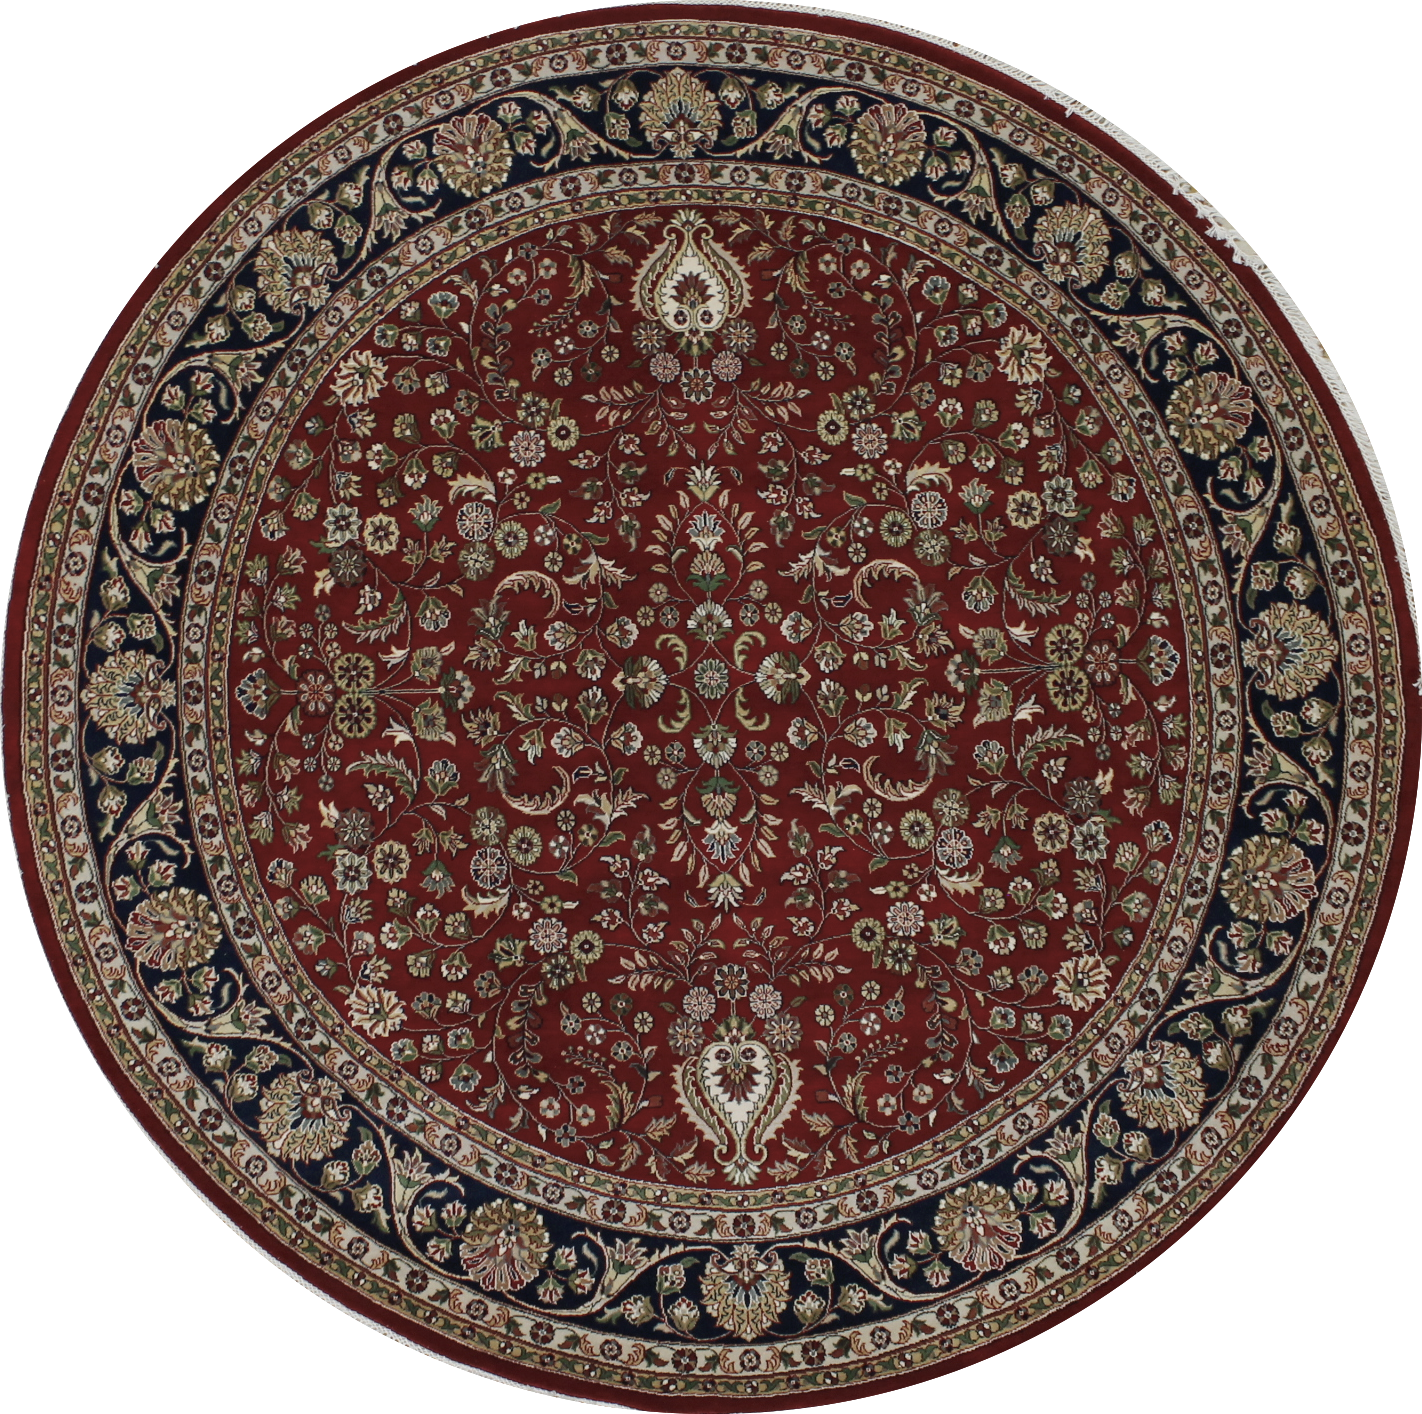 8 Round & Square Traditional Hand Knotted Wool Area Rug - MR022415